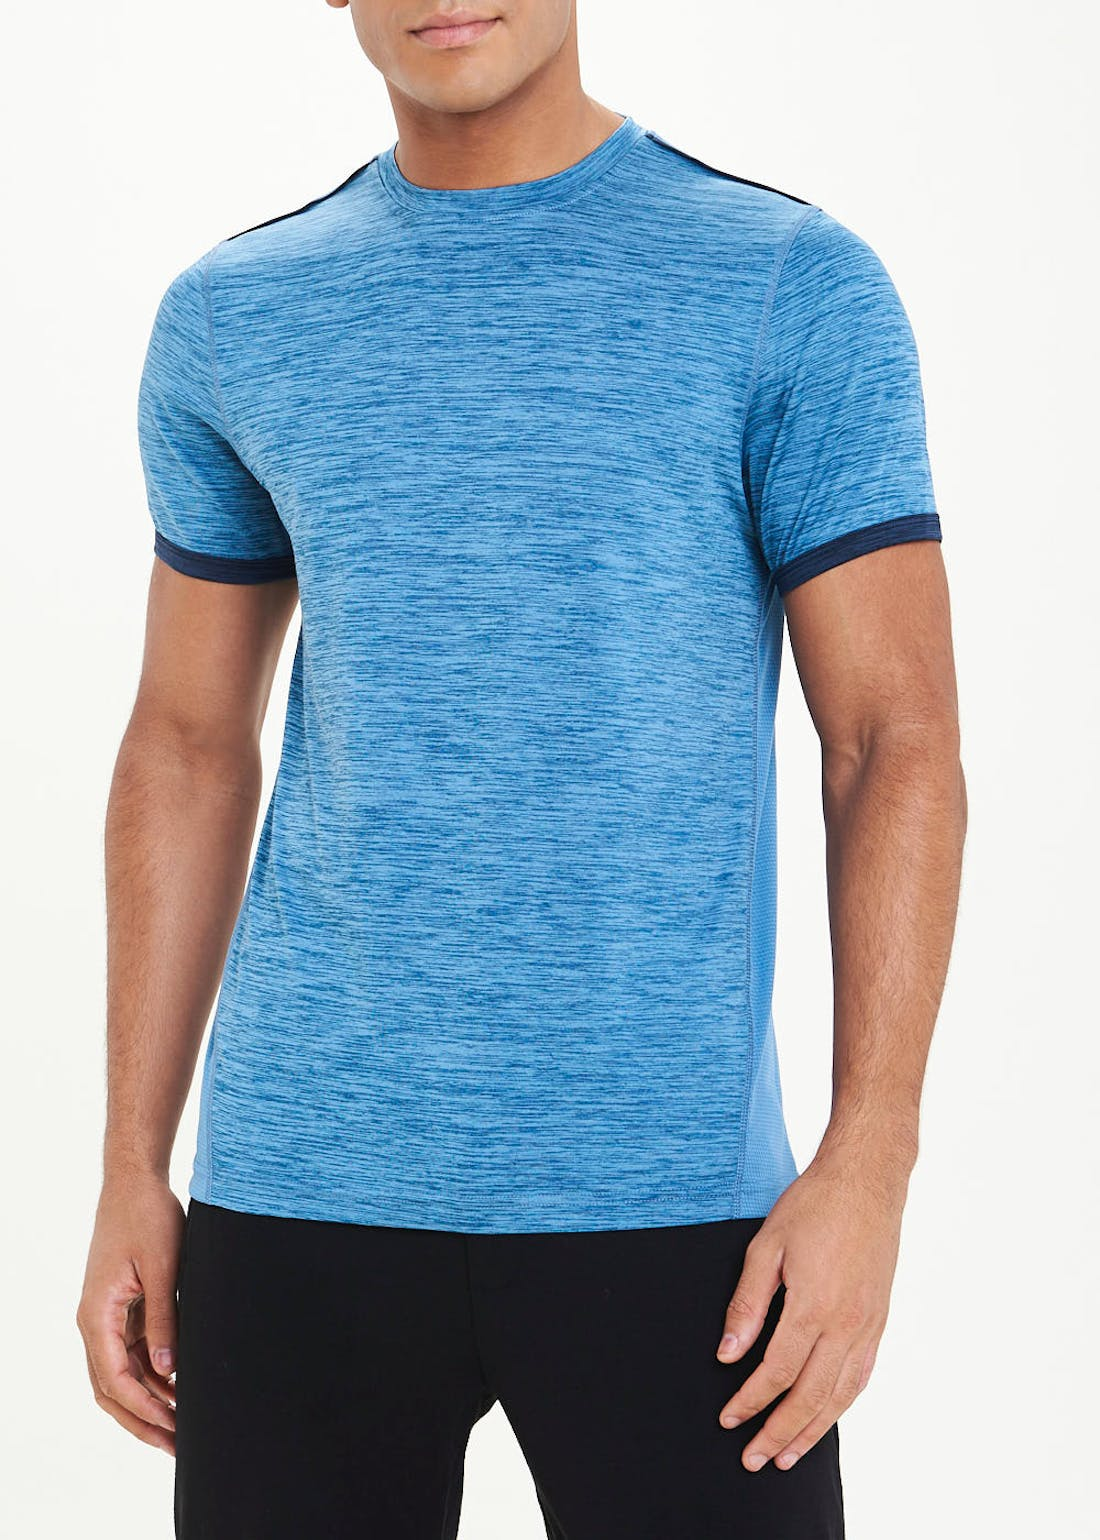 Souluxe Blue Tipped Gym T-Shirt